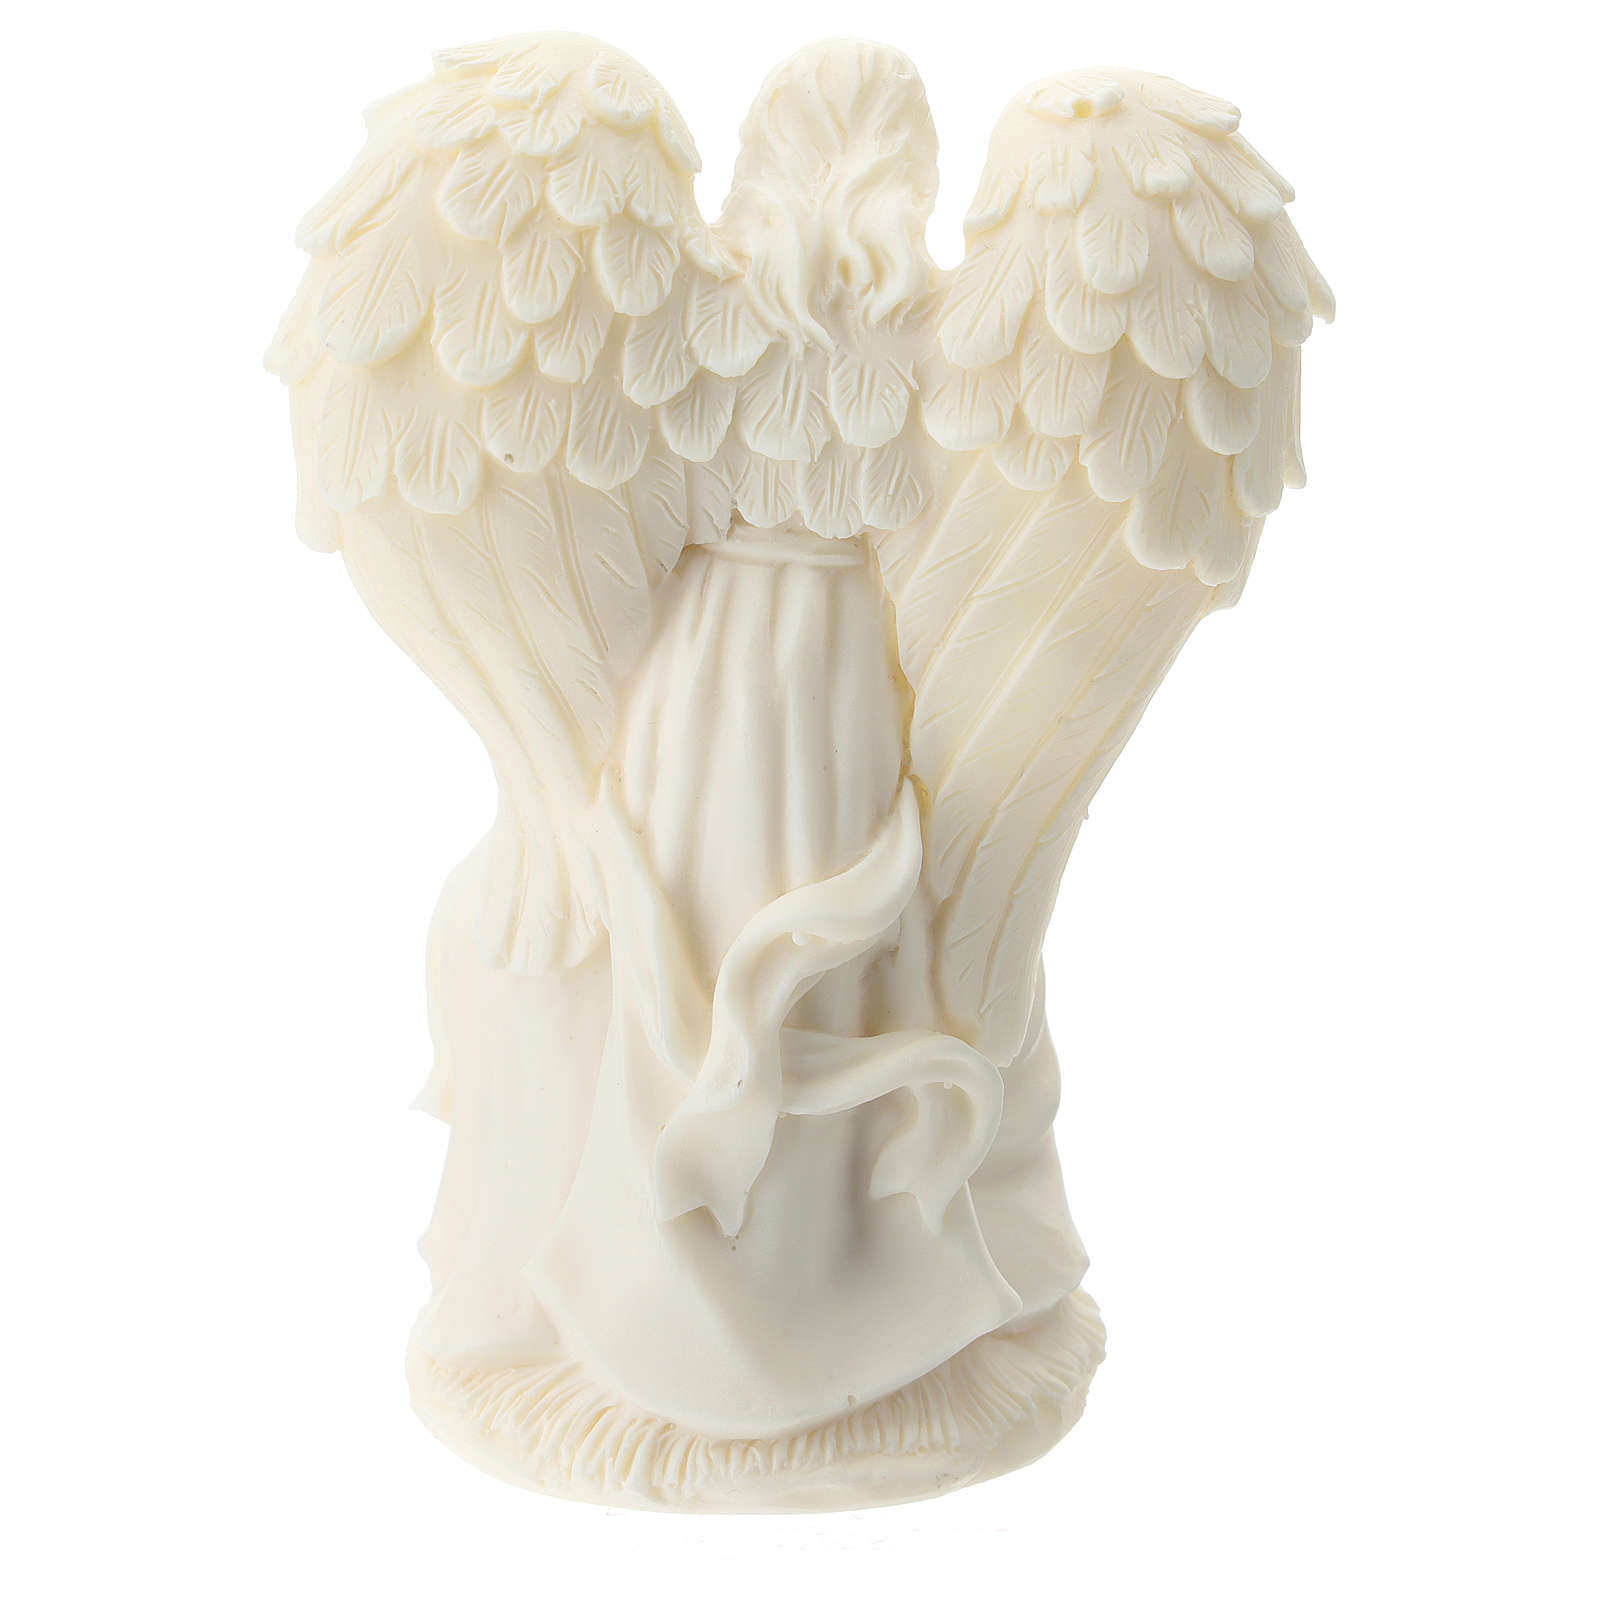 Nativity and Angel in white resin 10 cm 3